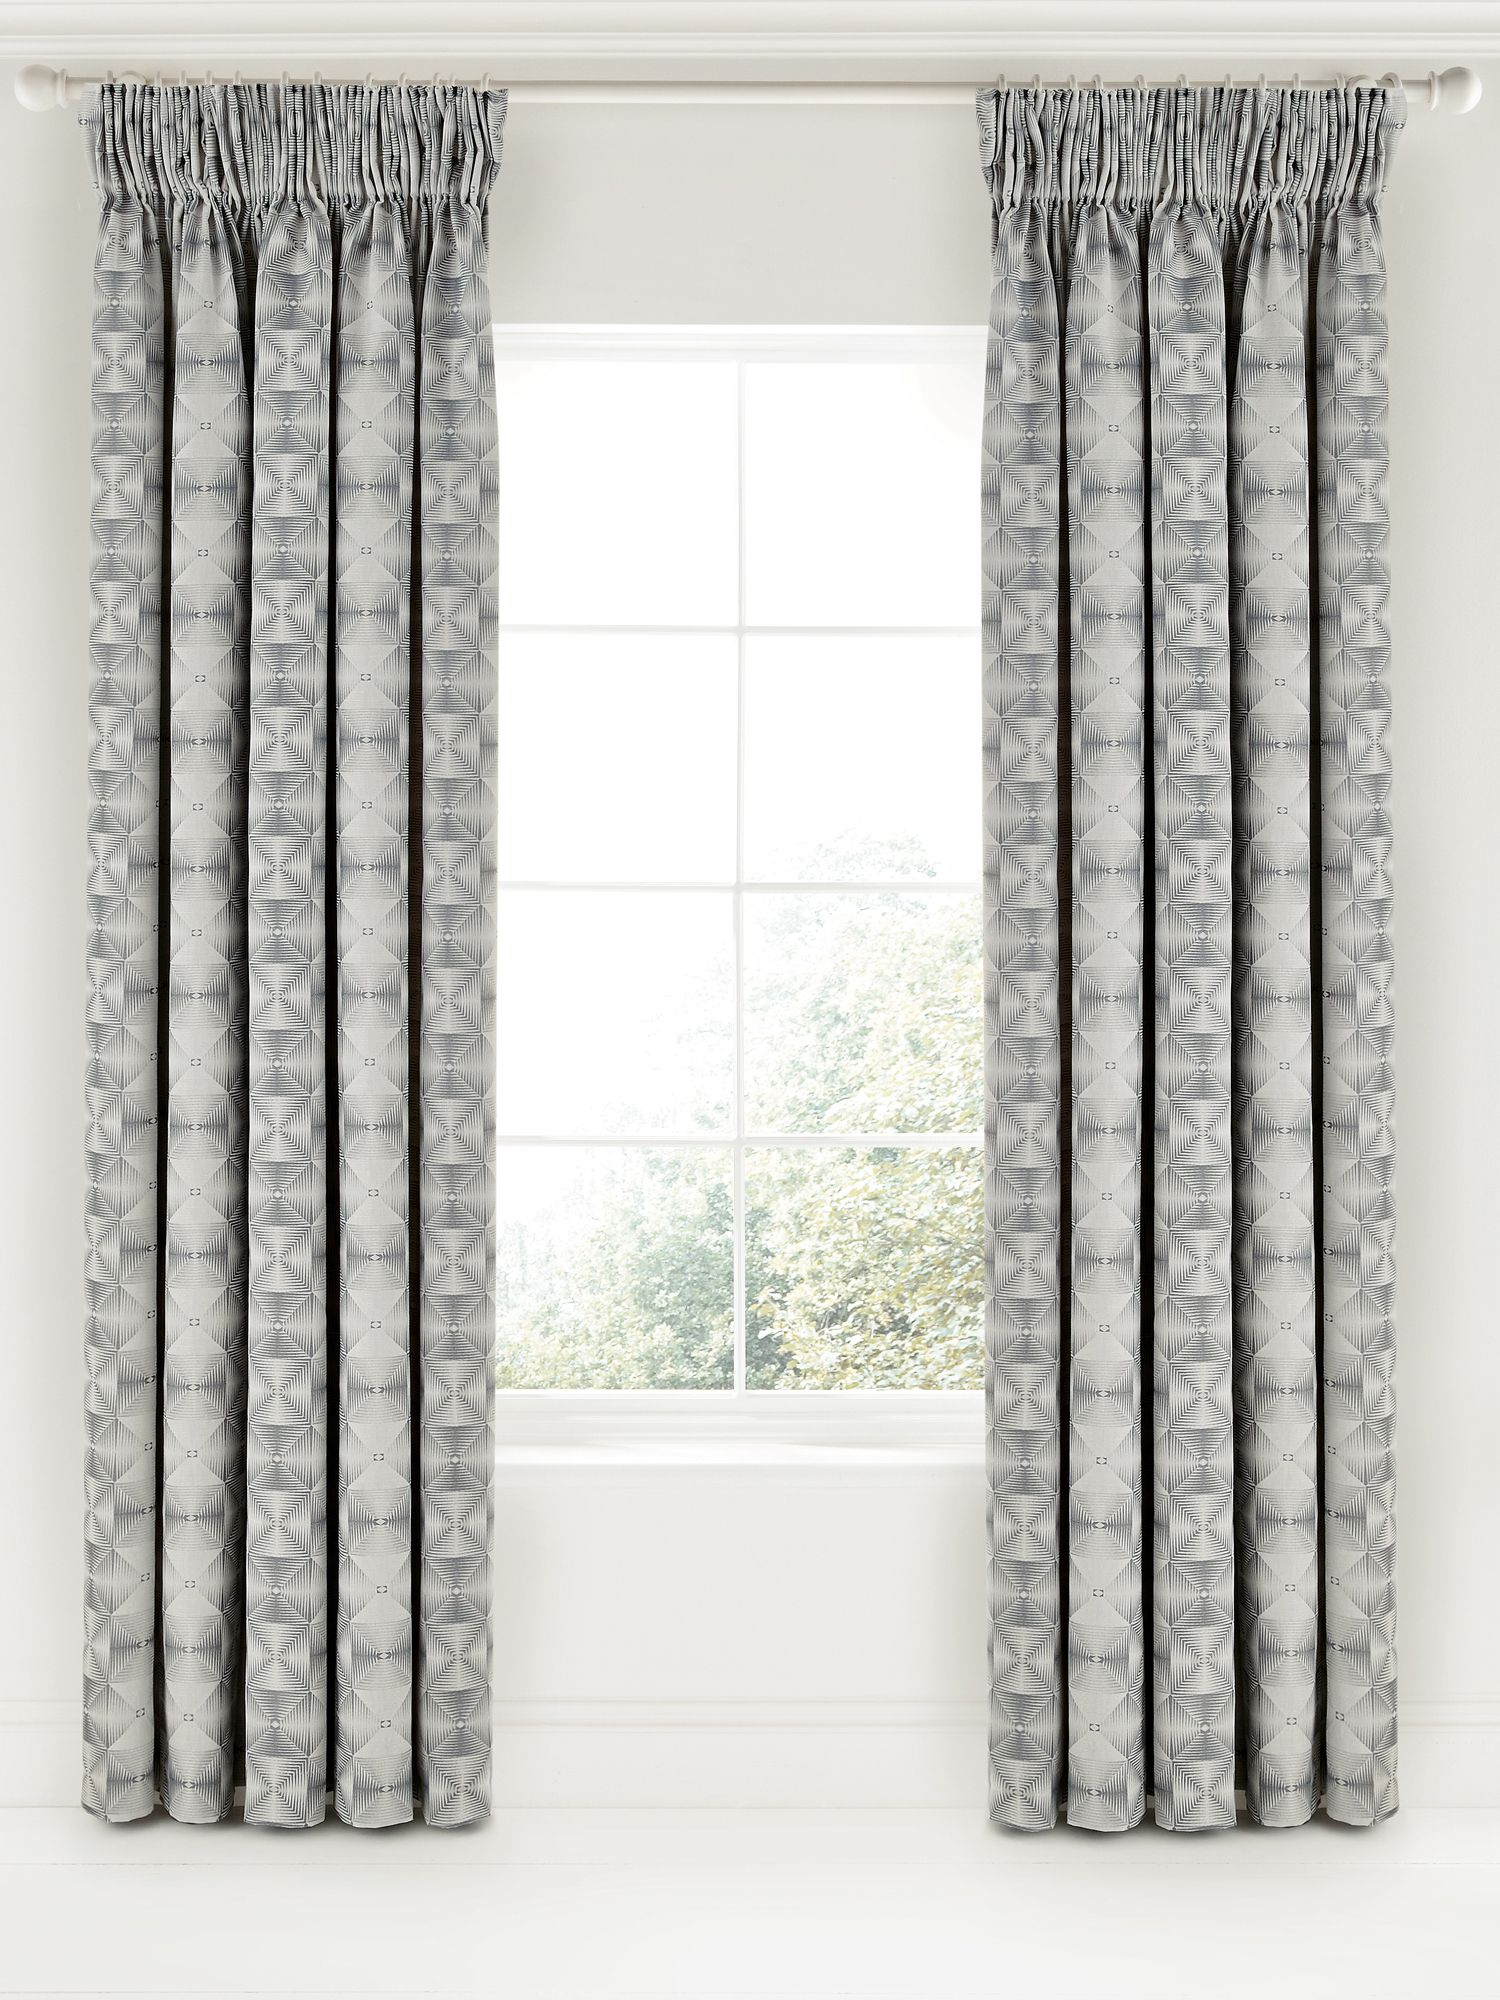 Bedeck 1951 Bedeck 1951 Soto lined curtains 90x90 charcoal